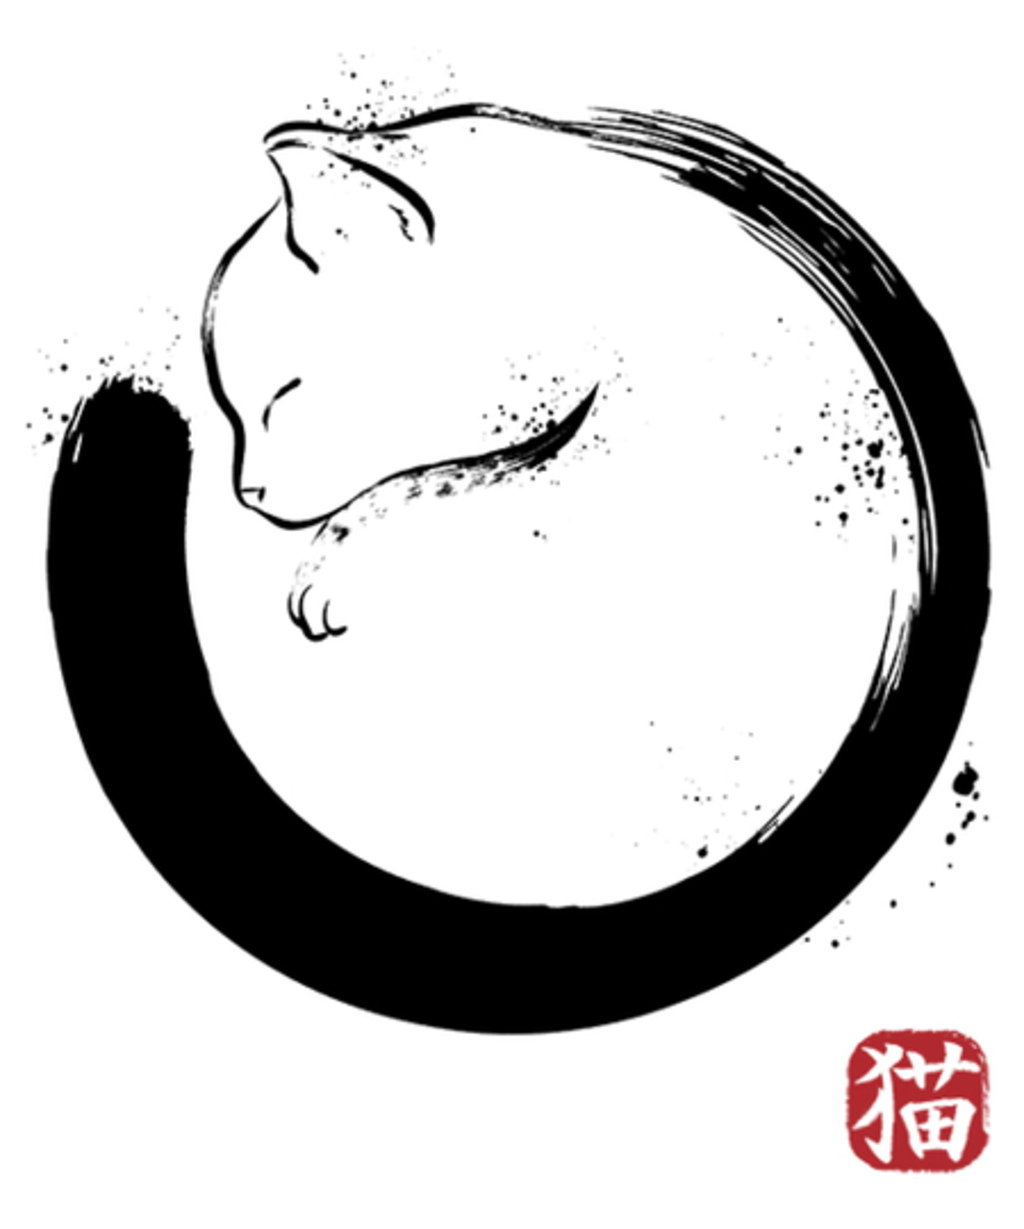 Qwertee: Purrfect Circle